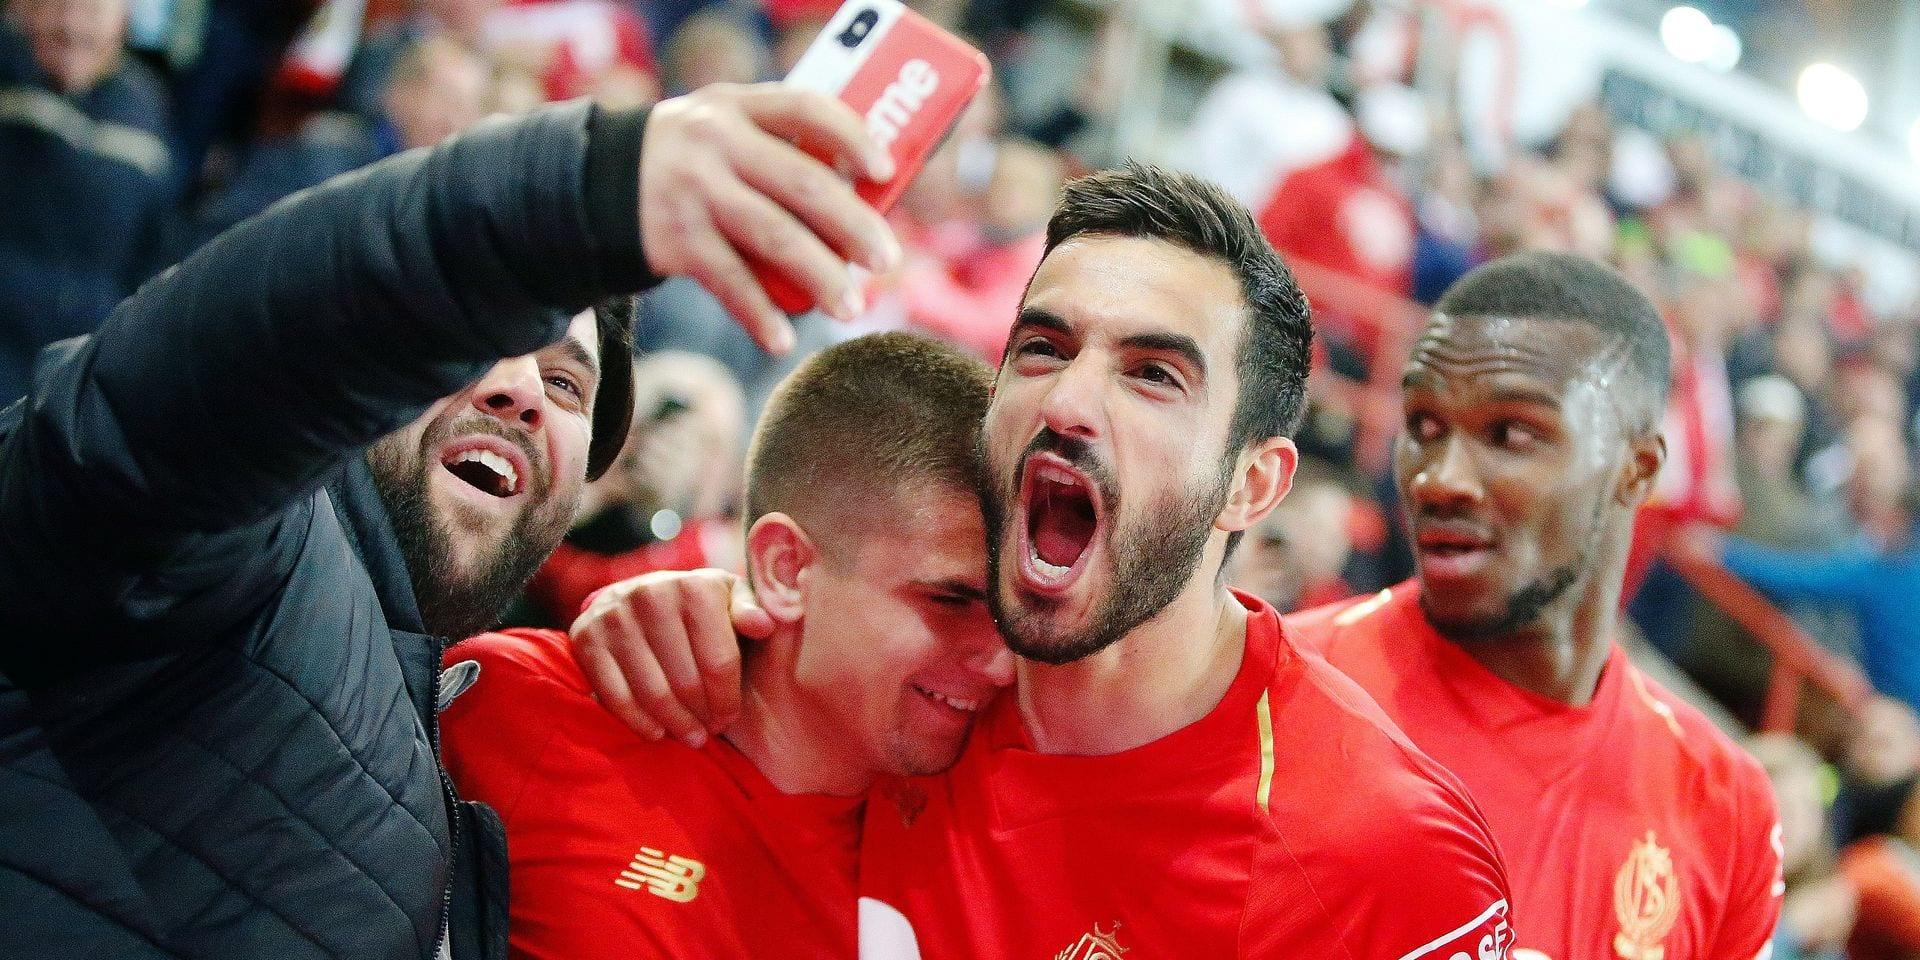 Standard's Razvan Marin and Standard's Konstantinos Kostas Laifis celebrate during a soccer match between Standard de Liege and Club Brugge, Thursday 16 May 2019 in Liege, on day 9 (out of 10) of the Play-off 1 of the 'Jupiler Pro League' Belgian soccer championship. BELGA PHOTO BRUNO FAHY